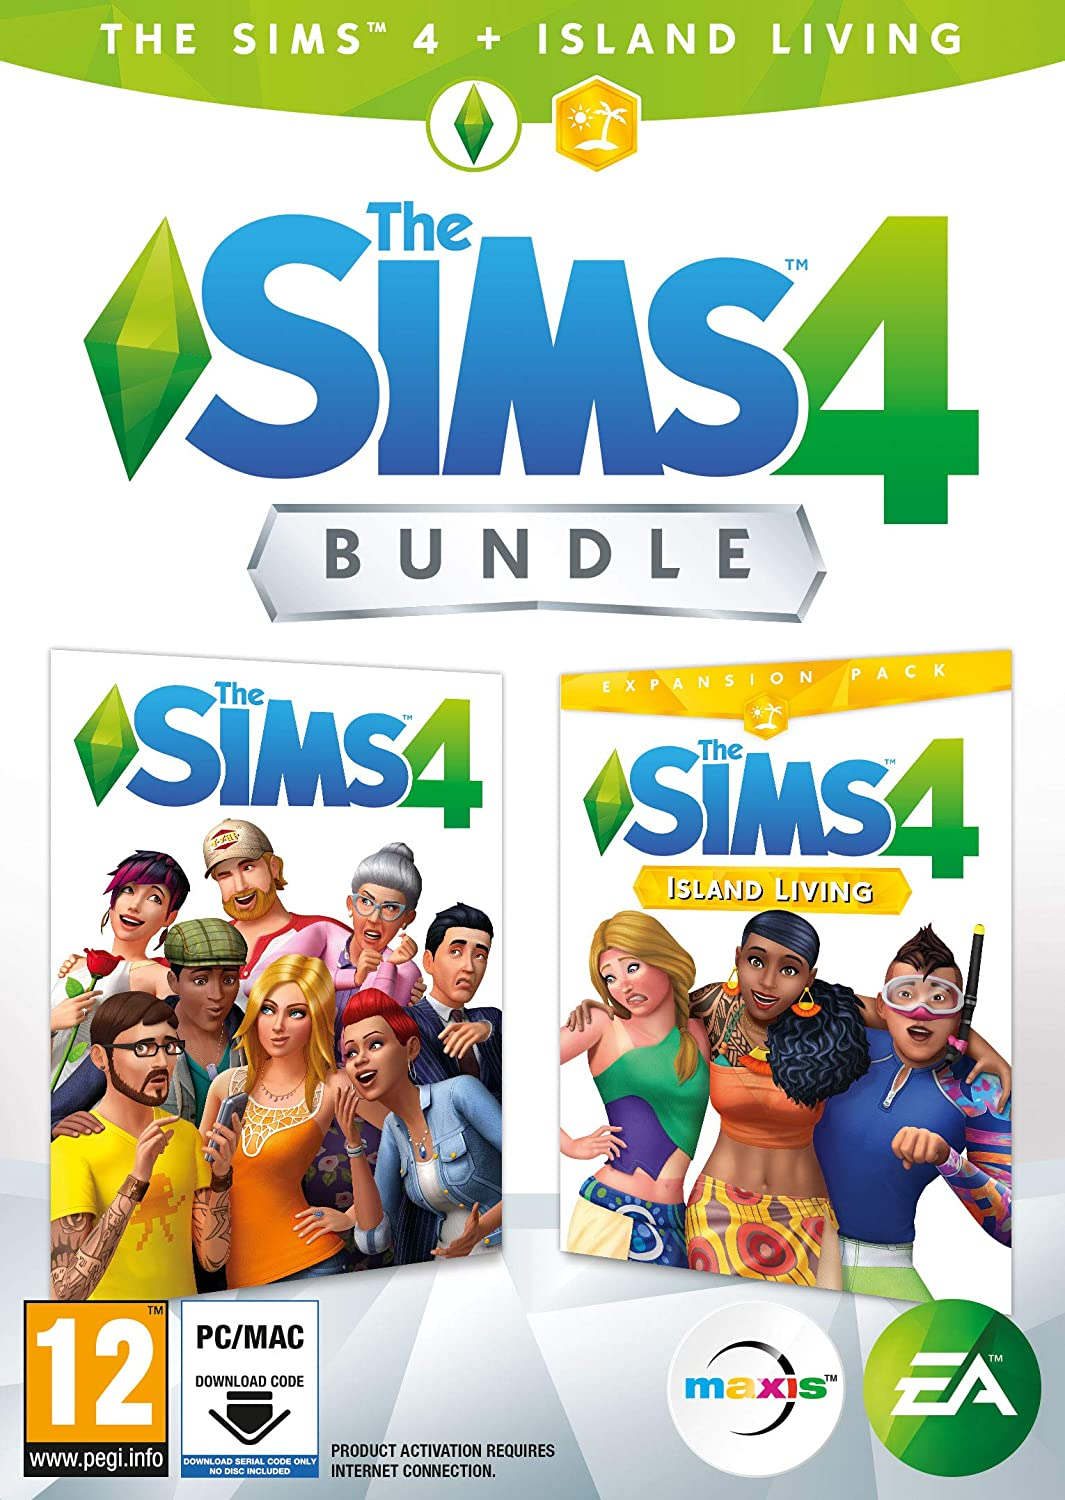 The Sims 4 Plus Island Living Deluxe Upgrade Bundle Digital Download Code In A Box Pc Dvd Amazon Co Uk Pc Video Games